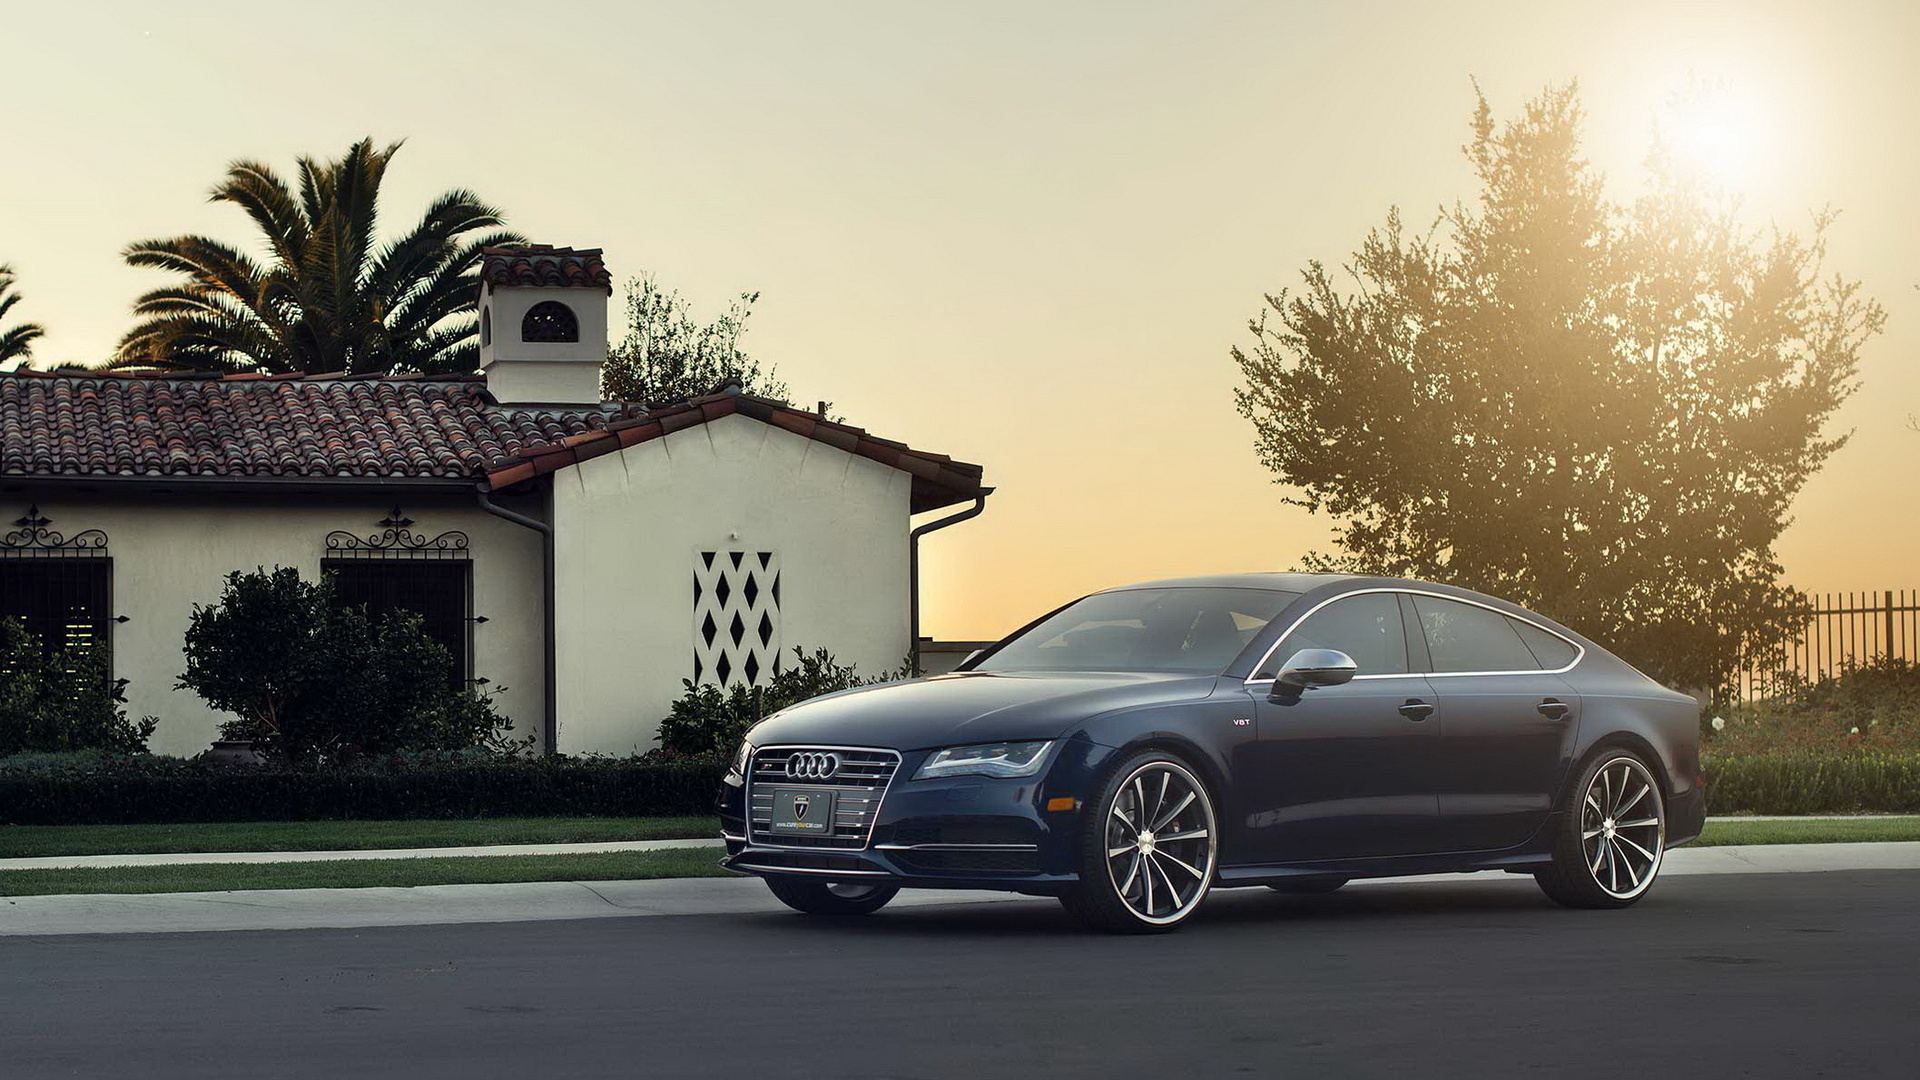 Beautiful Audi RS7 Wallpaper